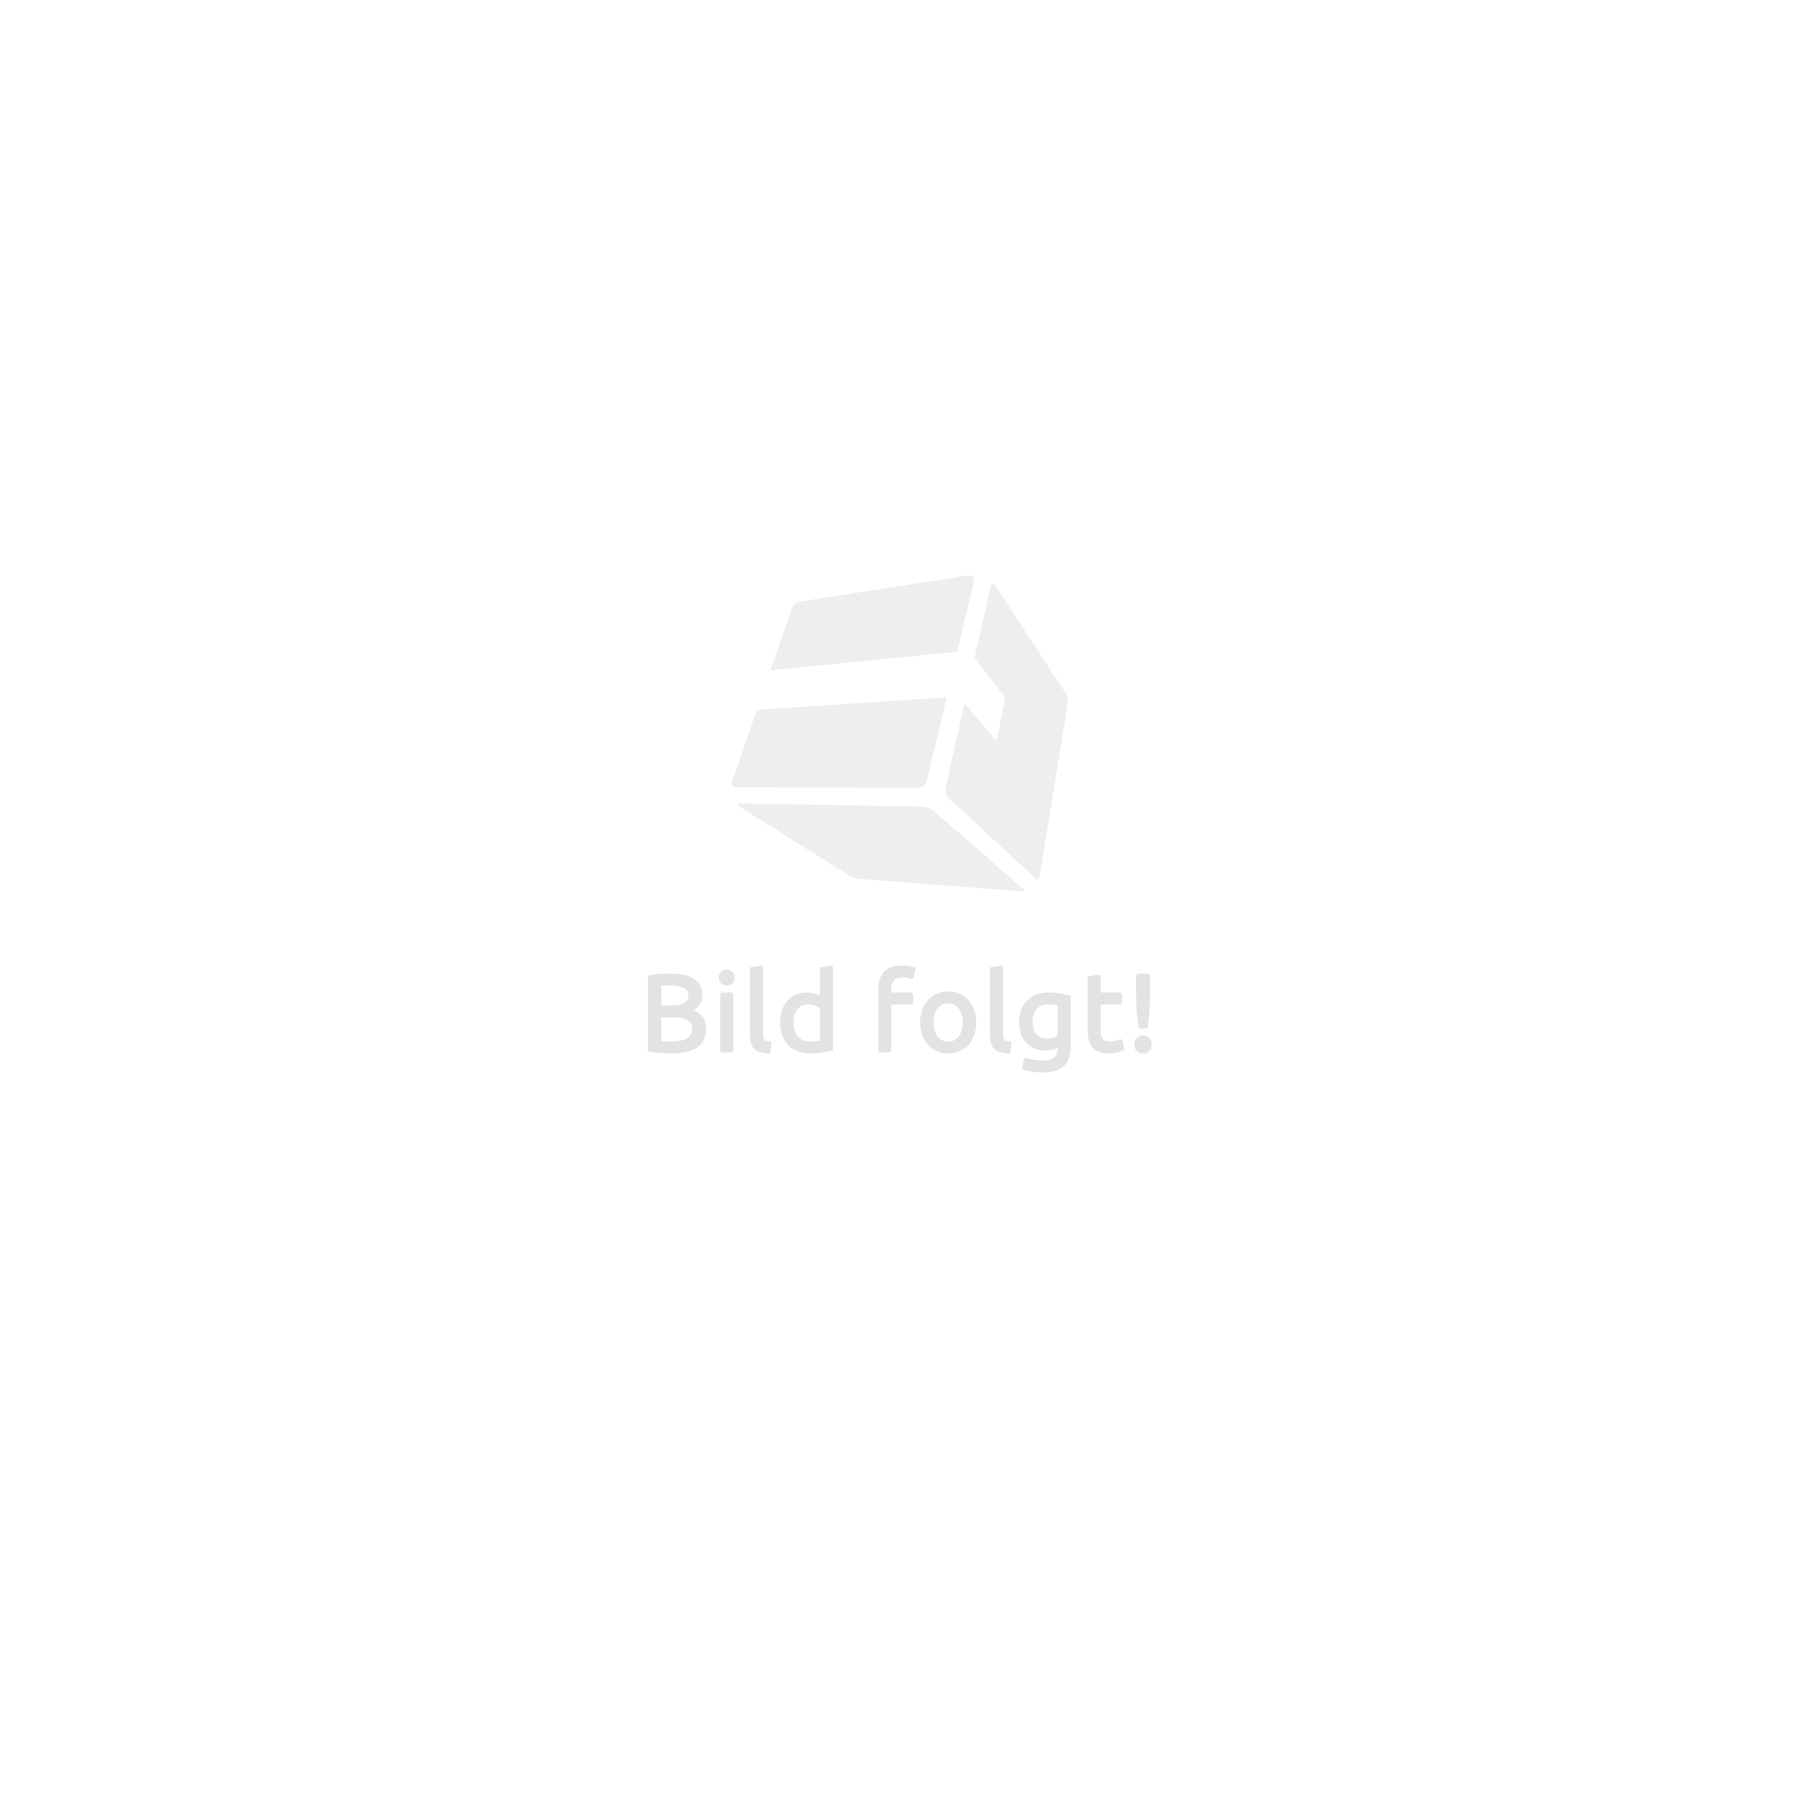 2x alu polyrattan sonnenliege tisch gartenliege rattan. Black Bedroom Furniture Sets. Home Design Ideas